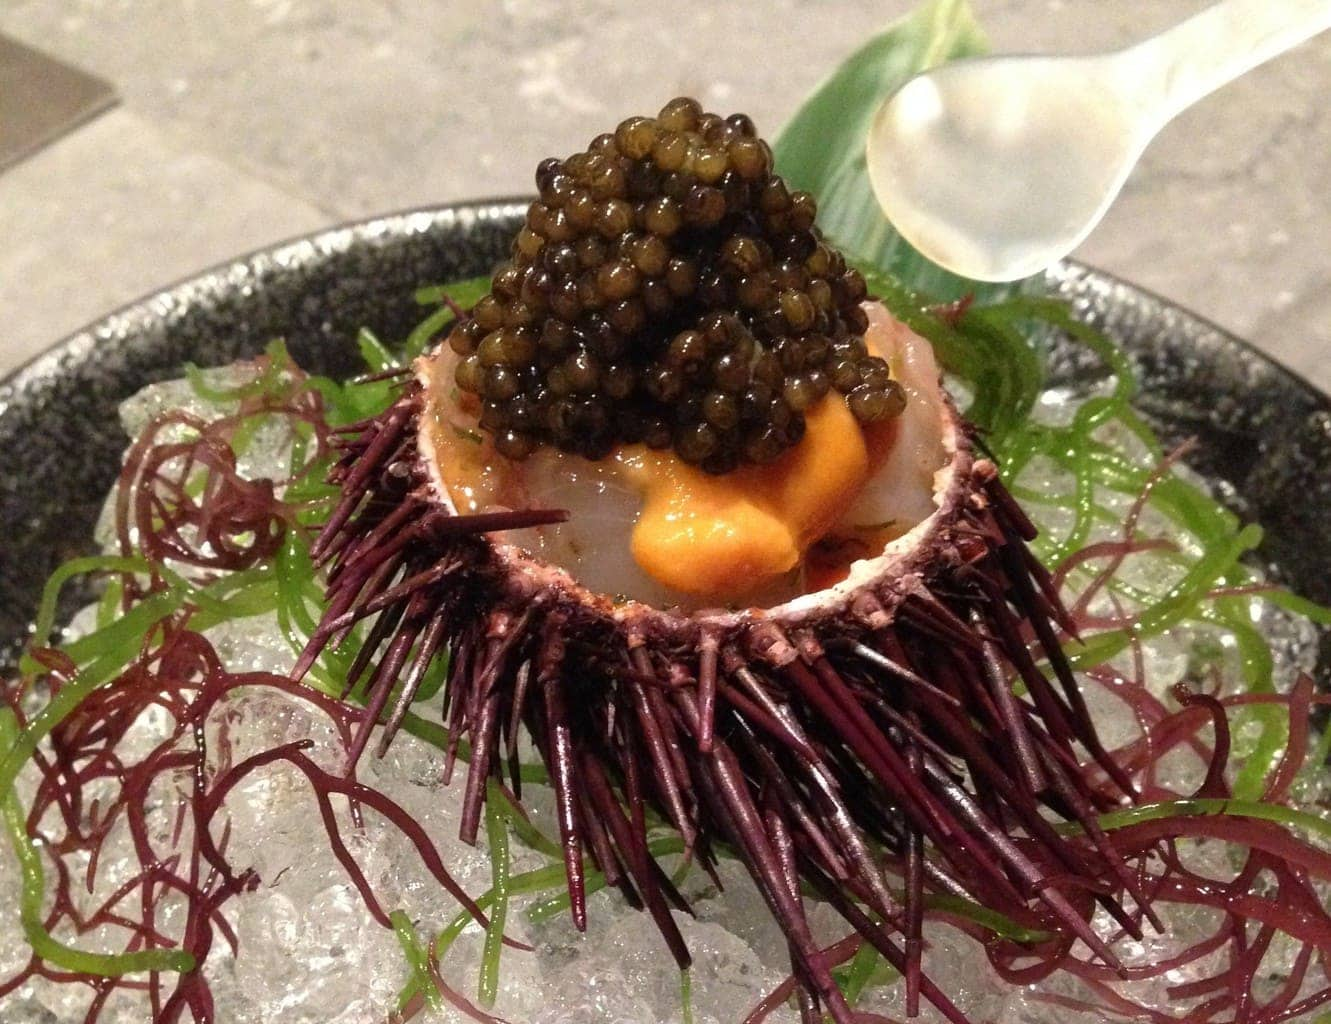 Sea urchin at Waku Ghin